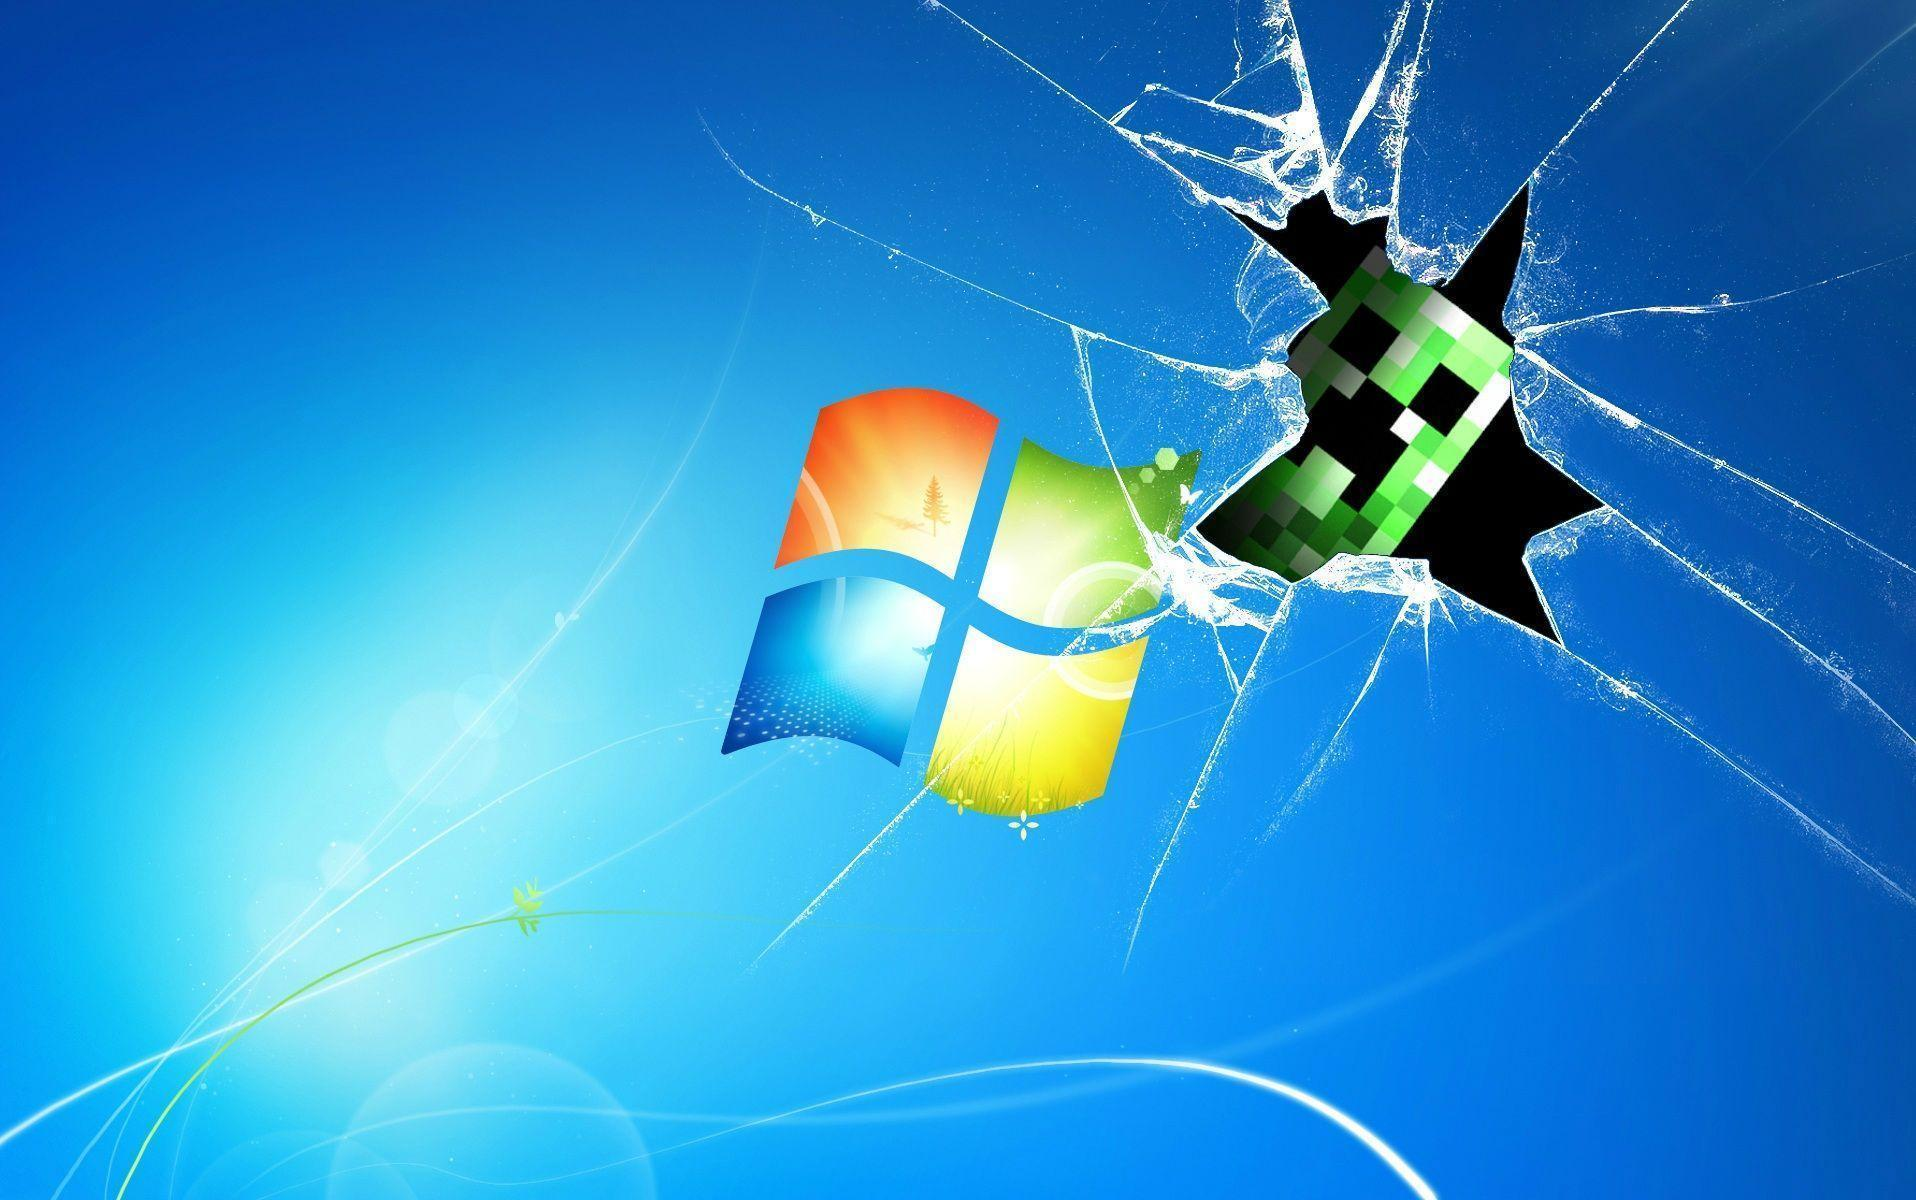 Cool Windows Xp Wallpapers 3d Good Desktop Wallpapers Wallpaper Cave